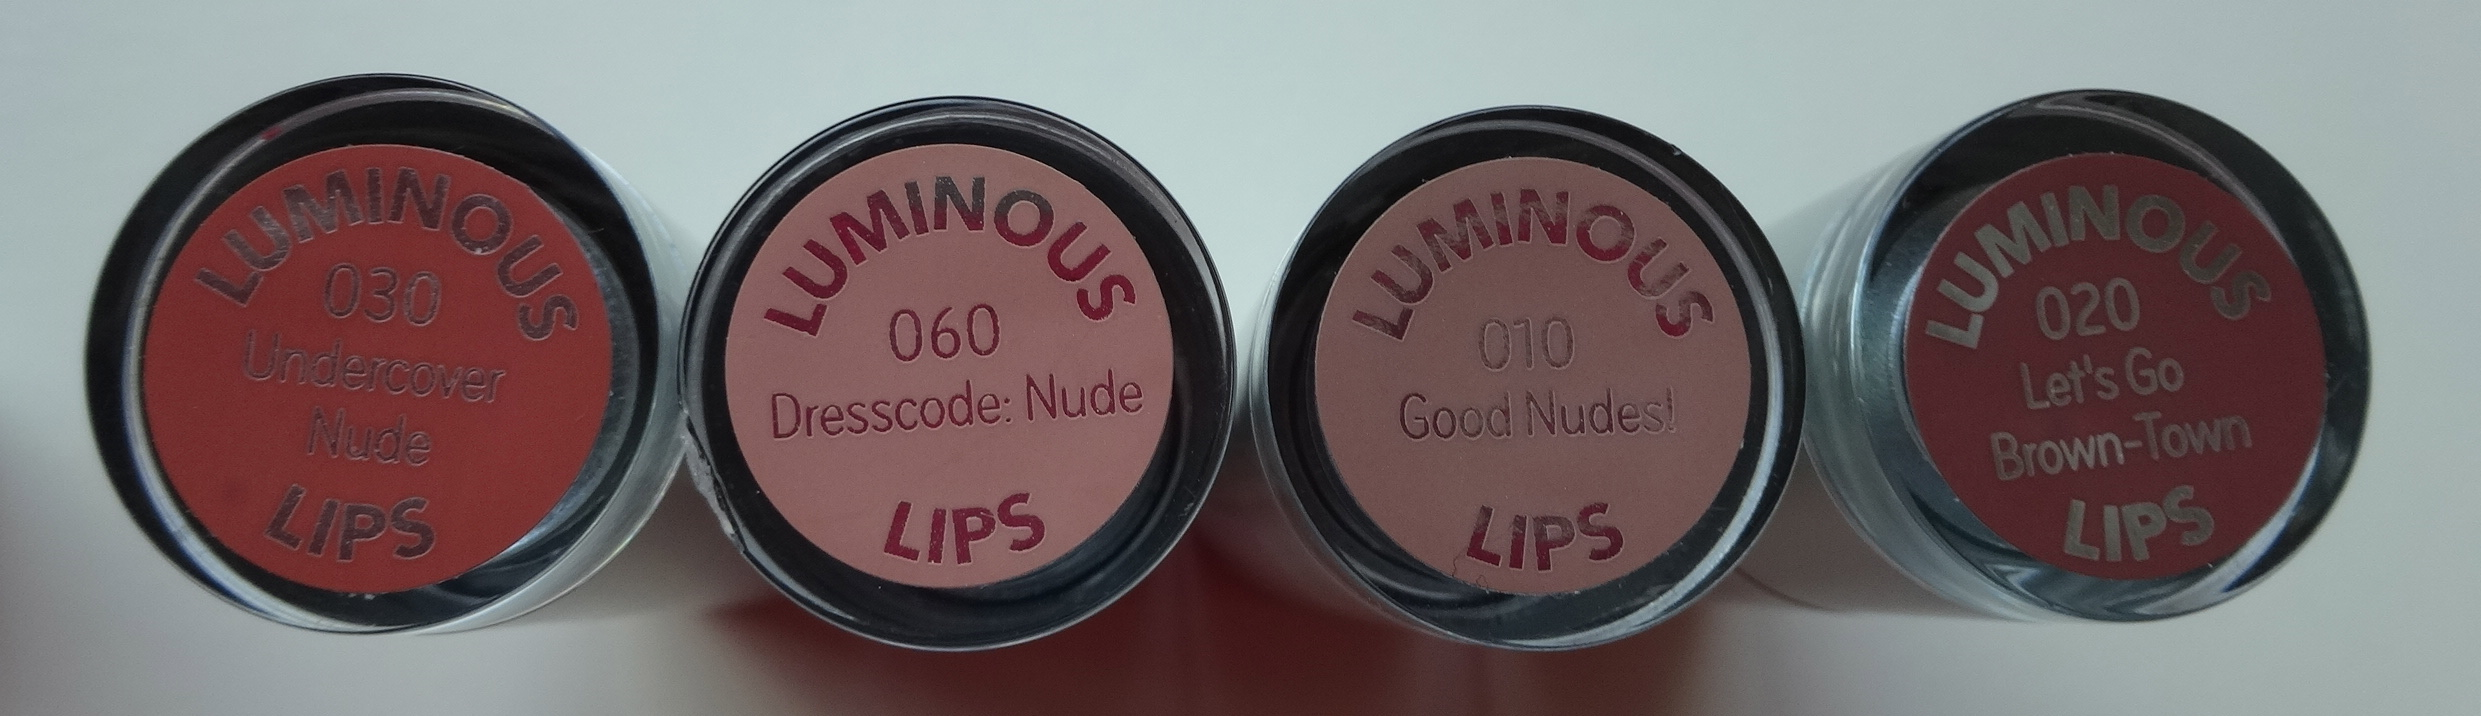 Catrice Luminous Lips Lippenstifte